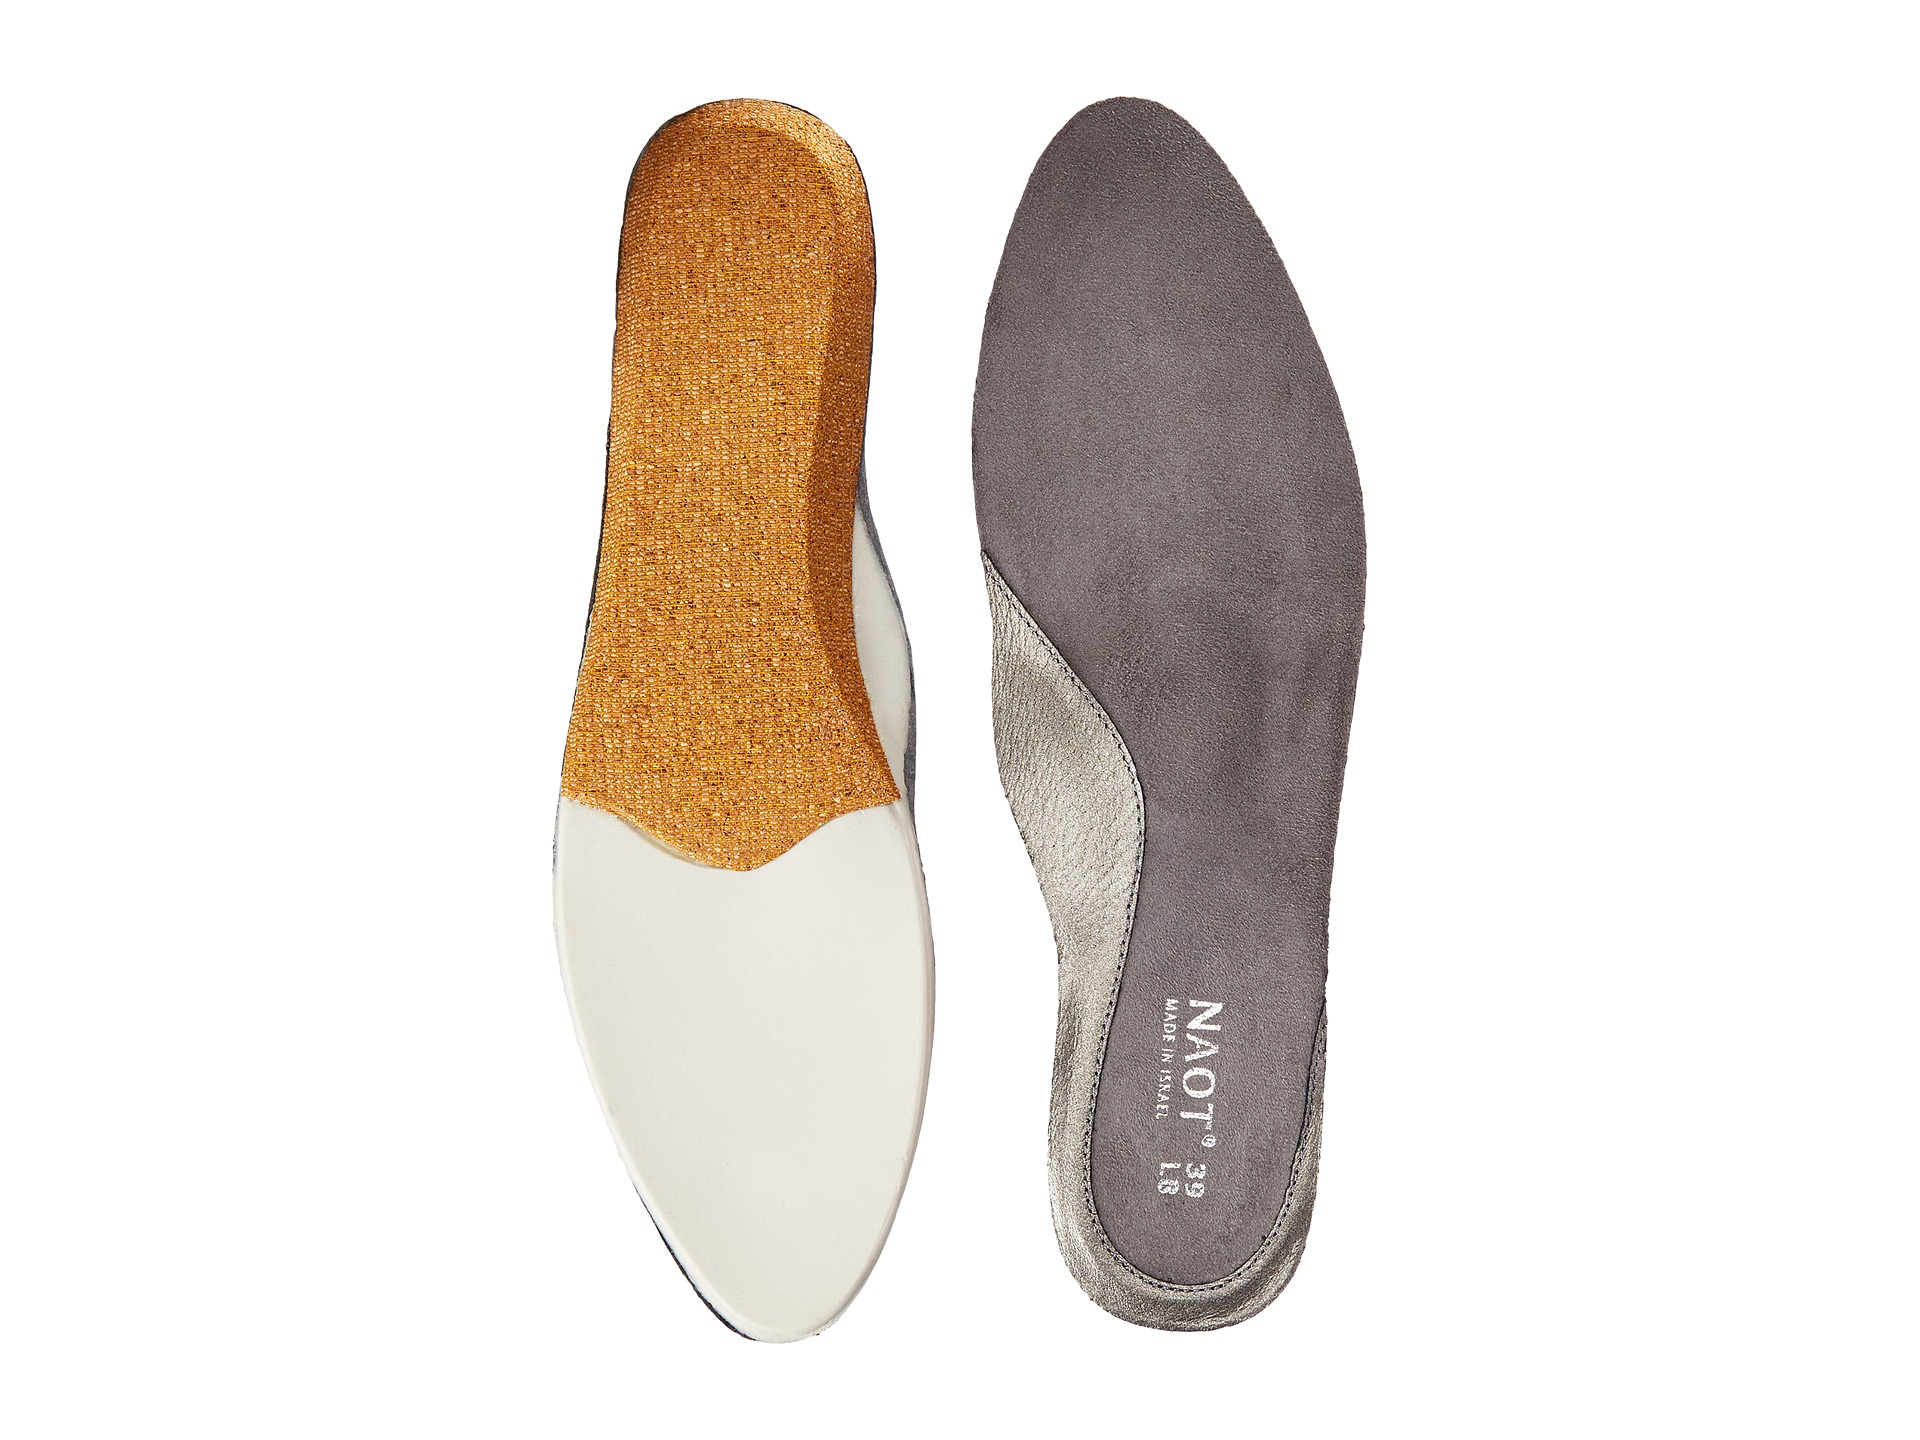 Rockport Shoes For Women